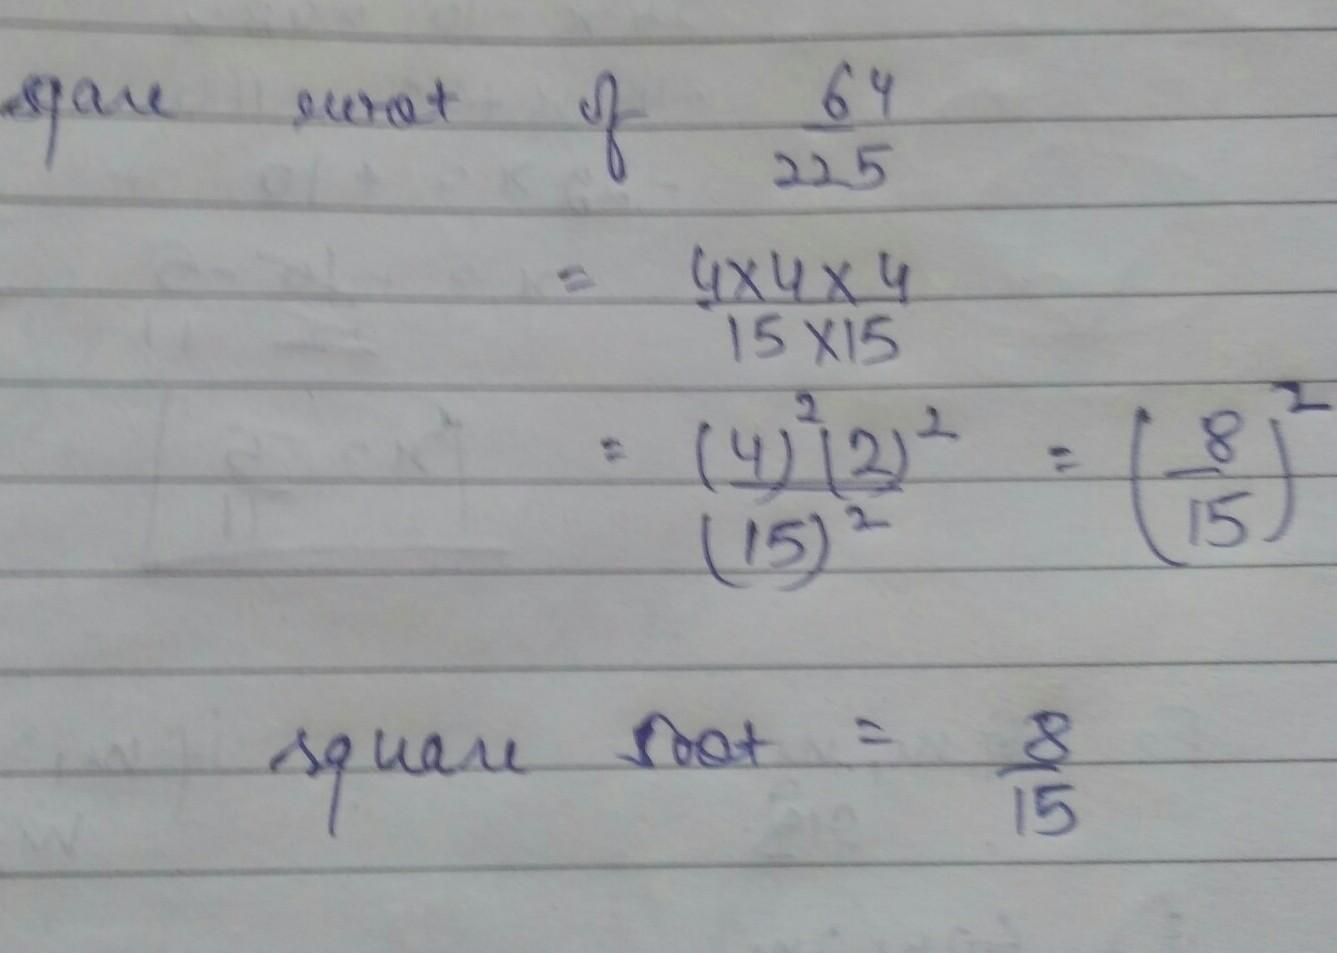 What's The Square Root Of 225 – √225 = 15, as 15 x 15 = 225.